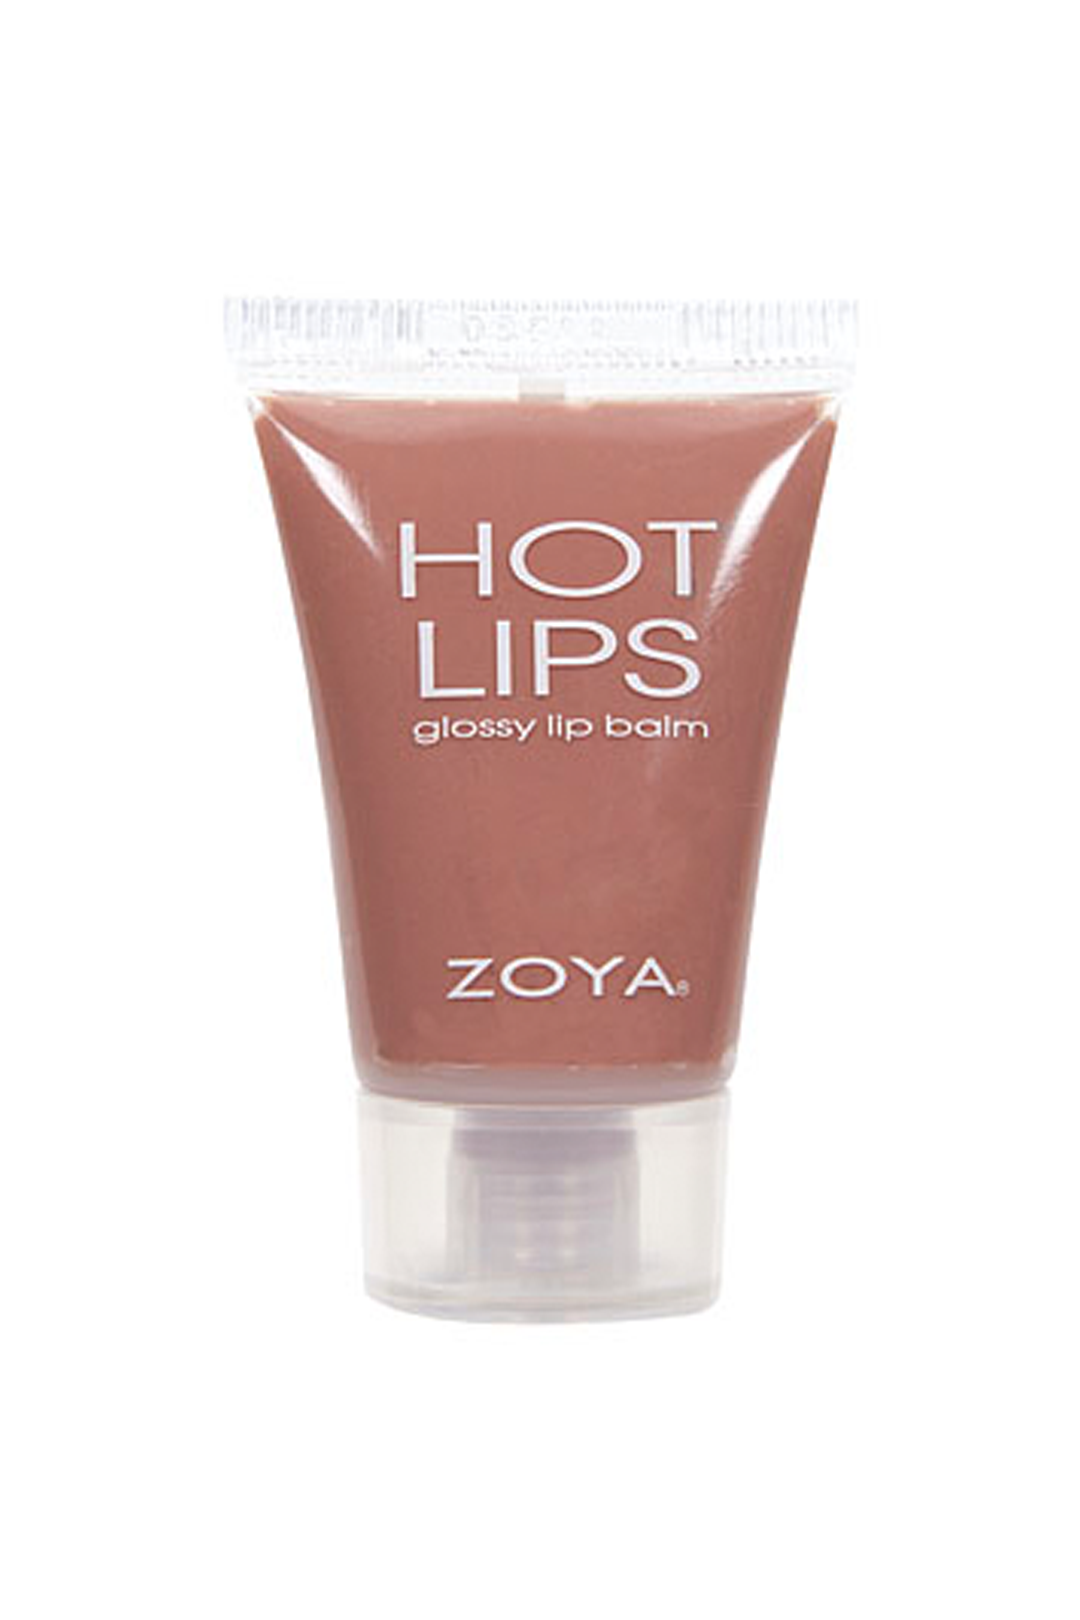 Hot Lips - Glossy Lip Balm